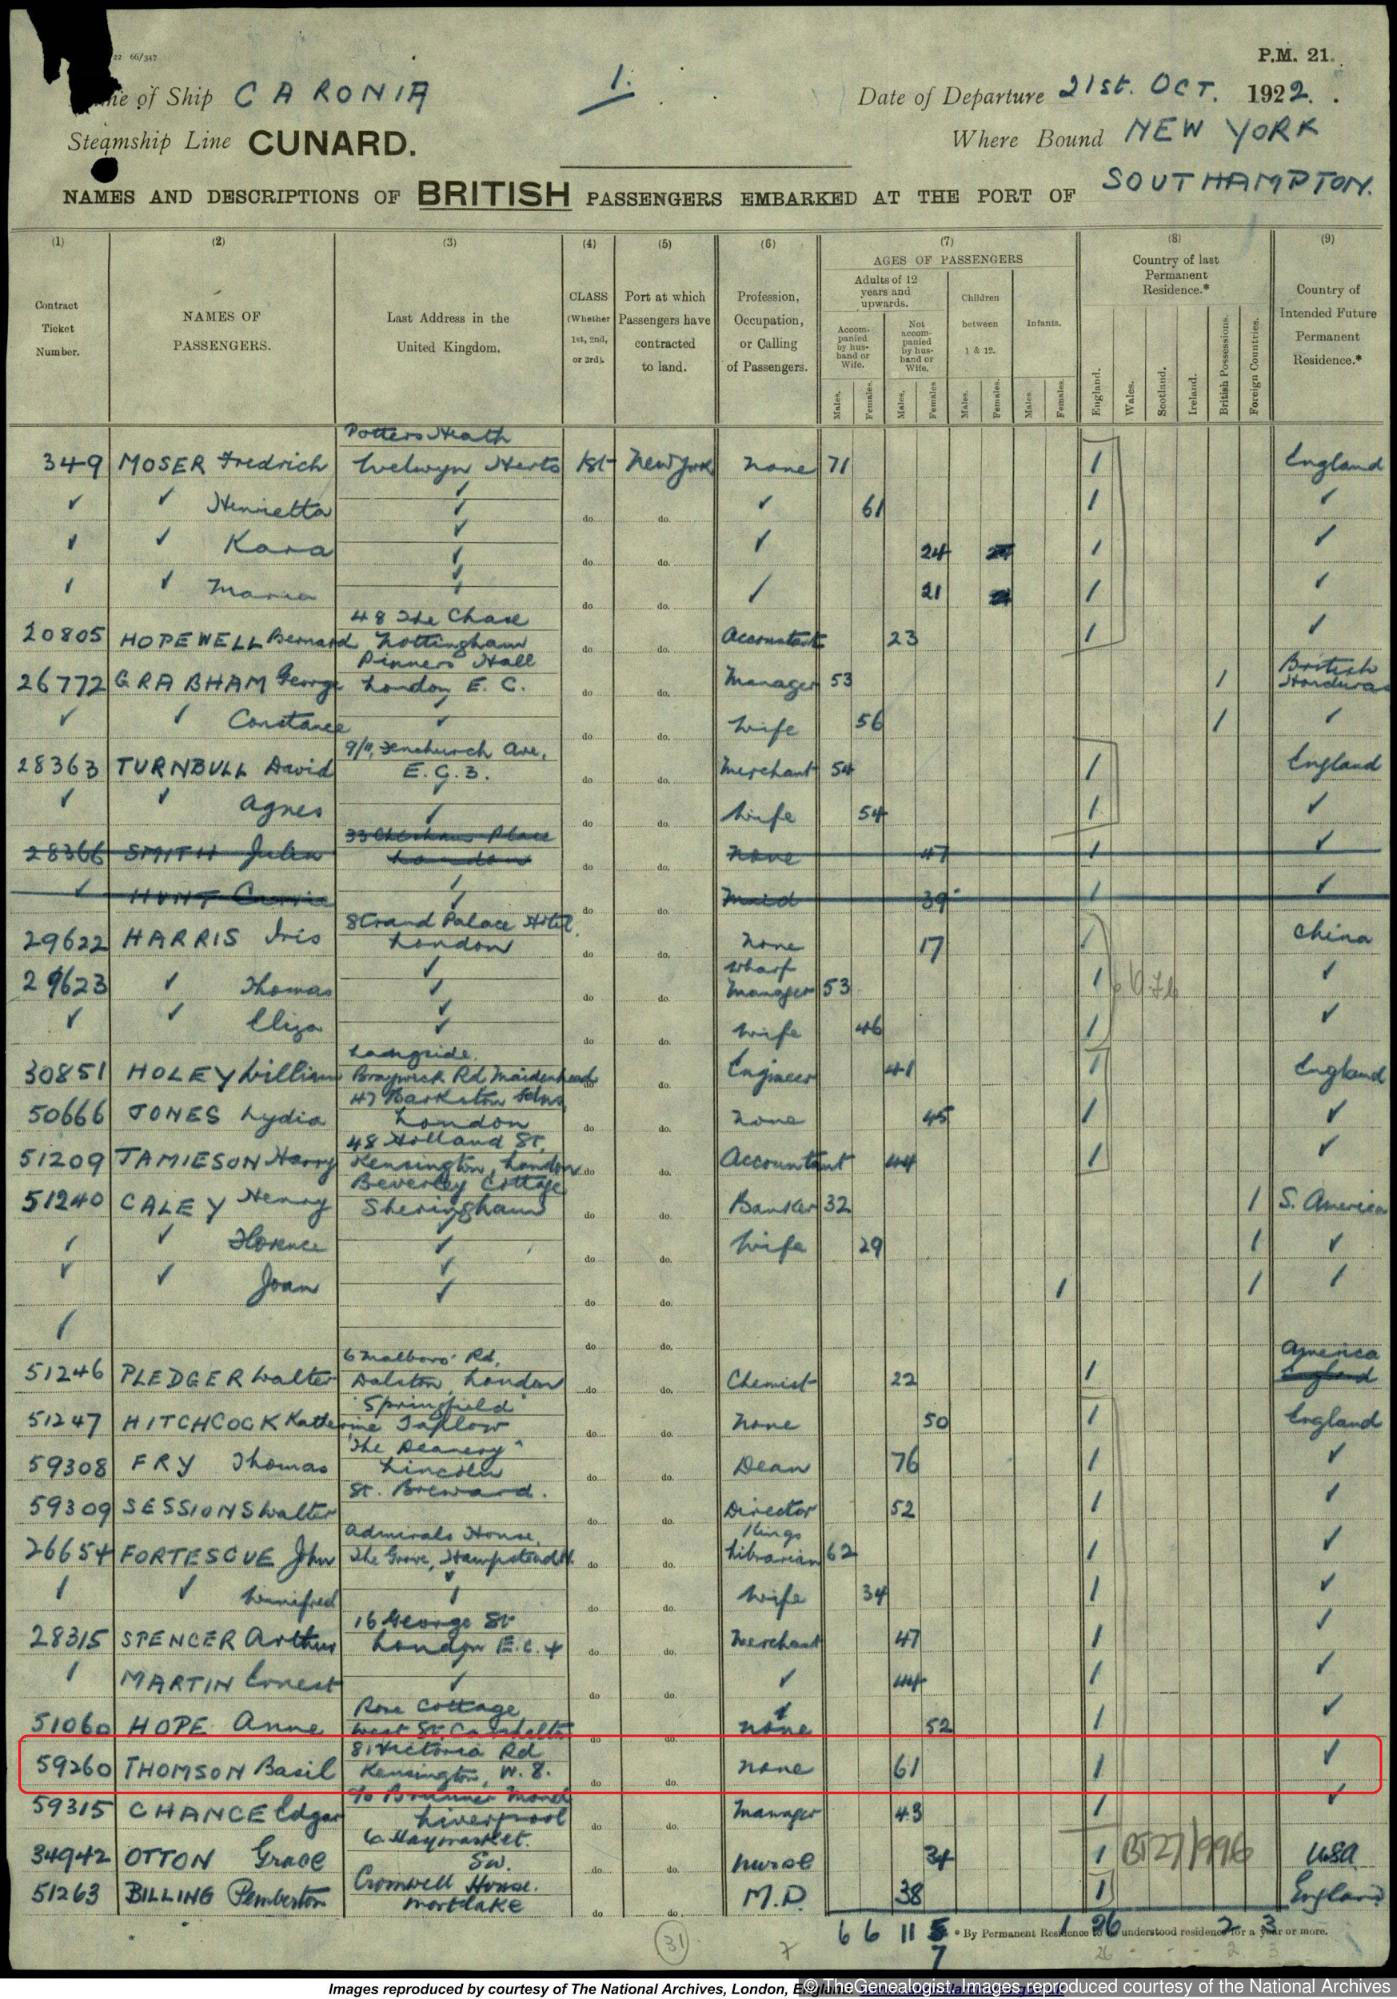 Basil in a New York outbound passenger list